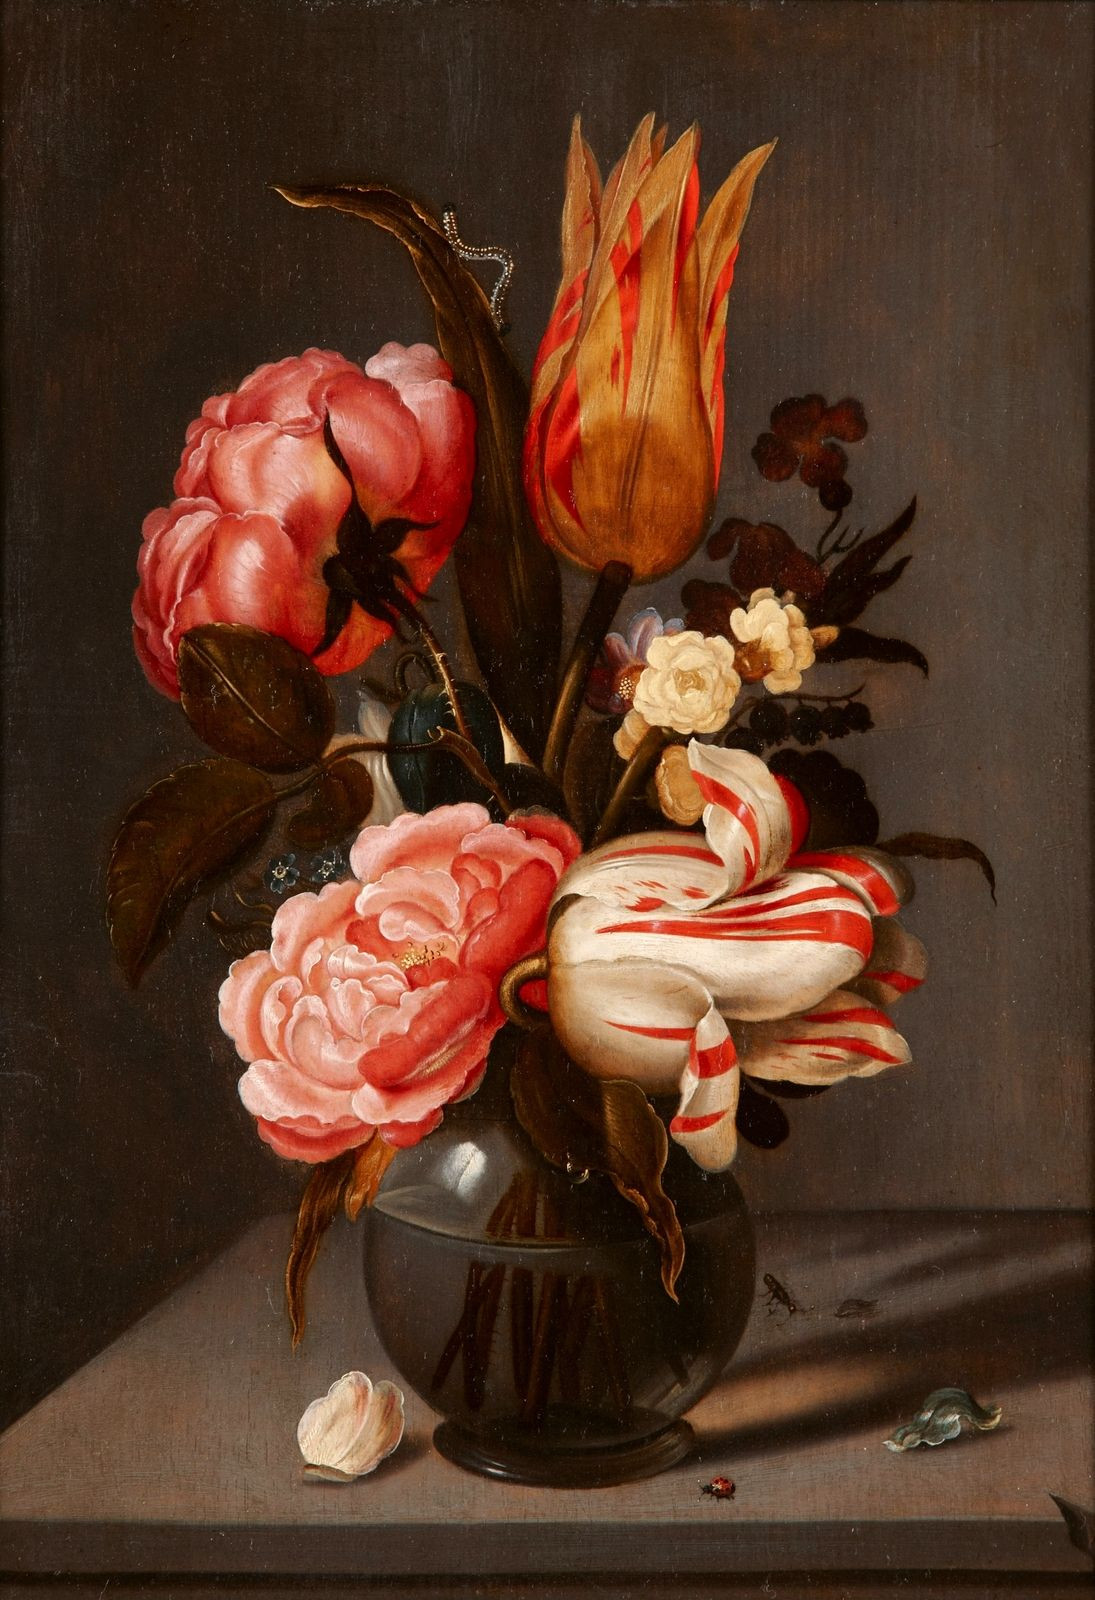 famous painting of flowers in a vase of ambrosius bosschaert the elder 1573 1621 bouquet of flowers in intended for ambrosius bosschaert the elder 1573 1621 bouquet of flowers in a